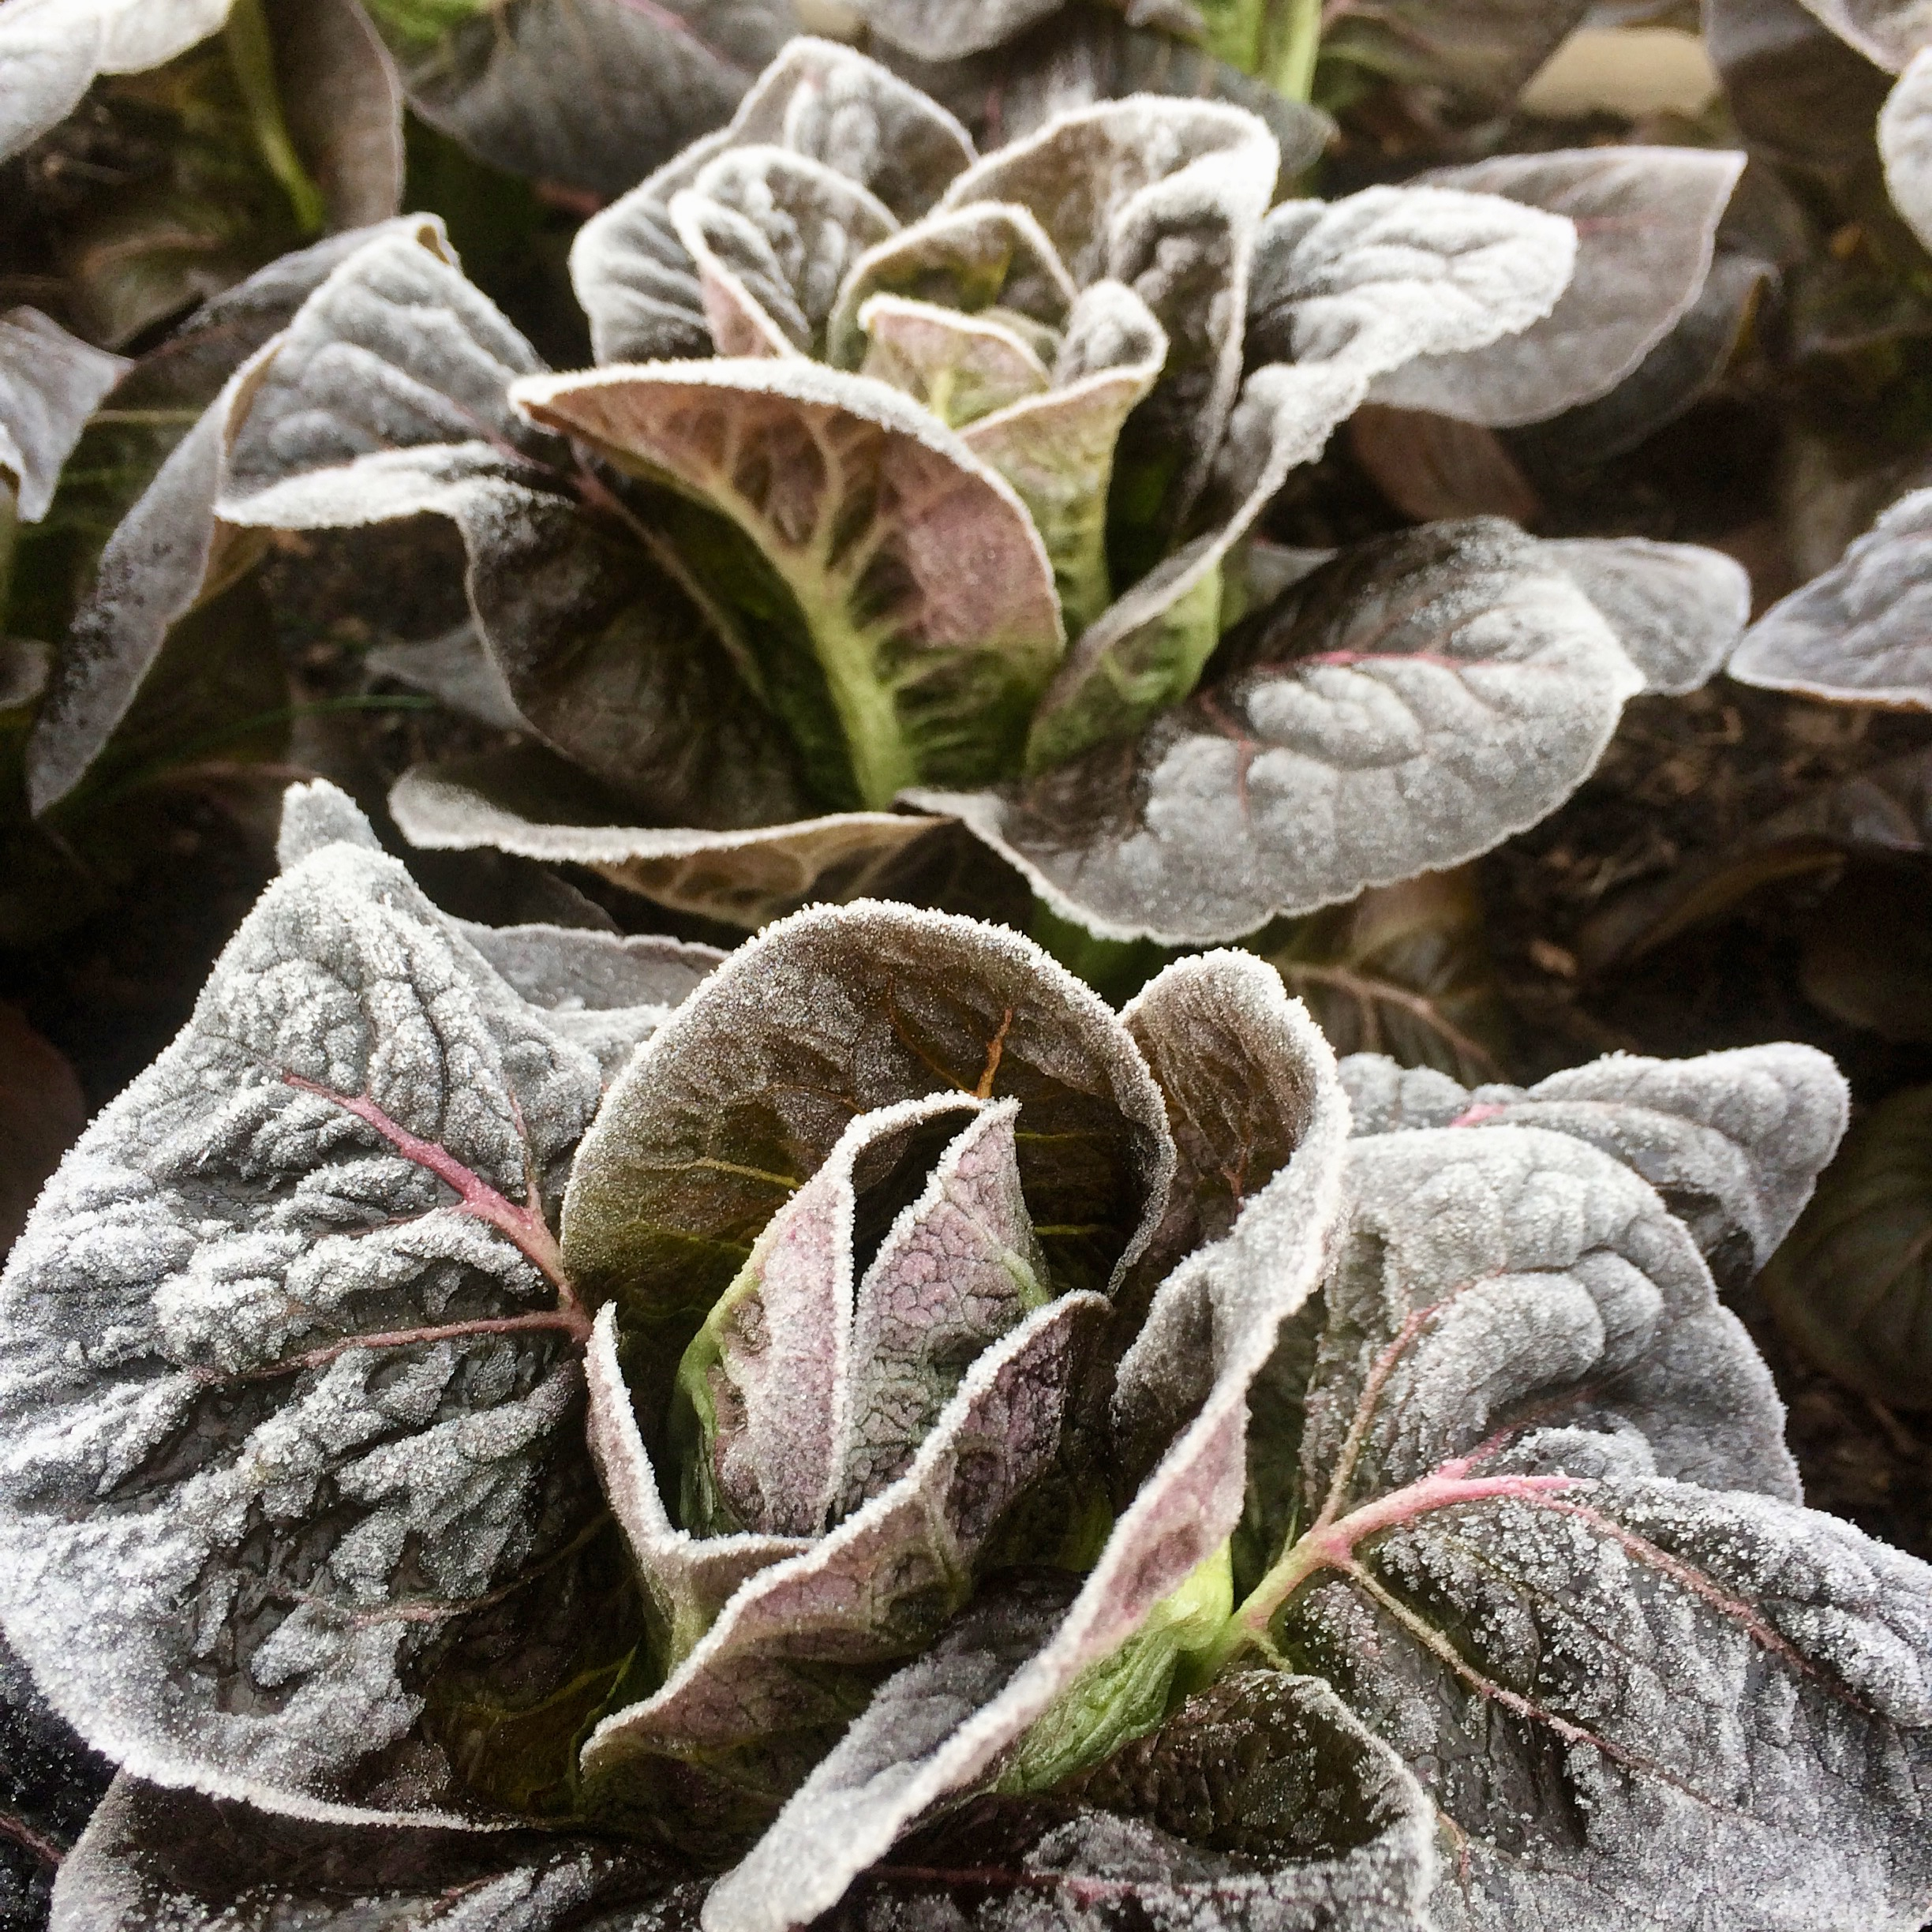 First Frost: Growing Vegetables in the Cold